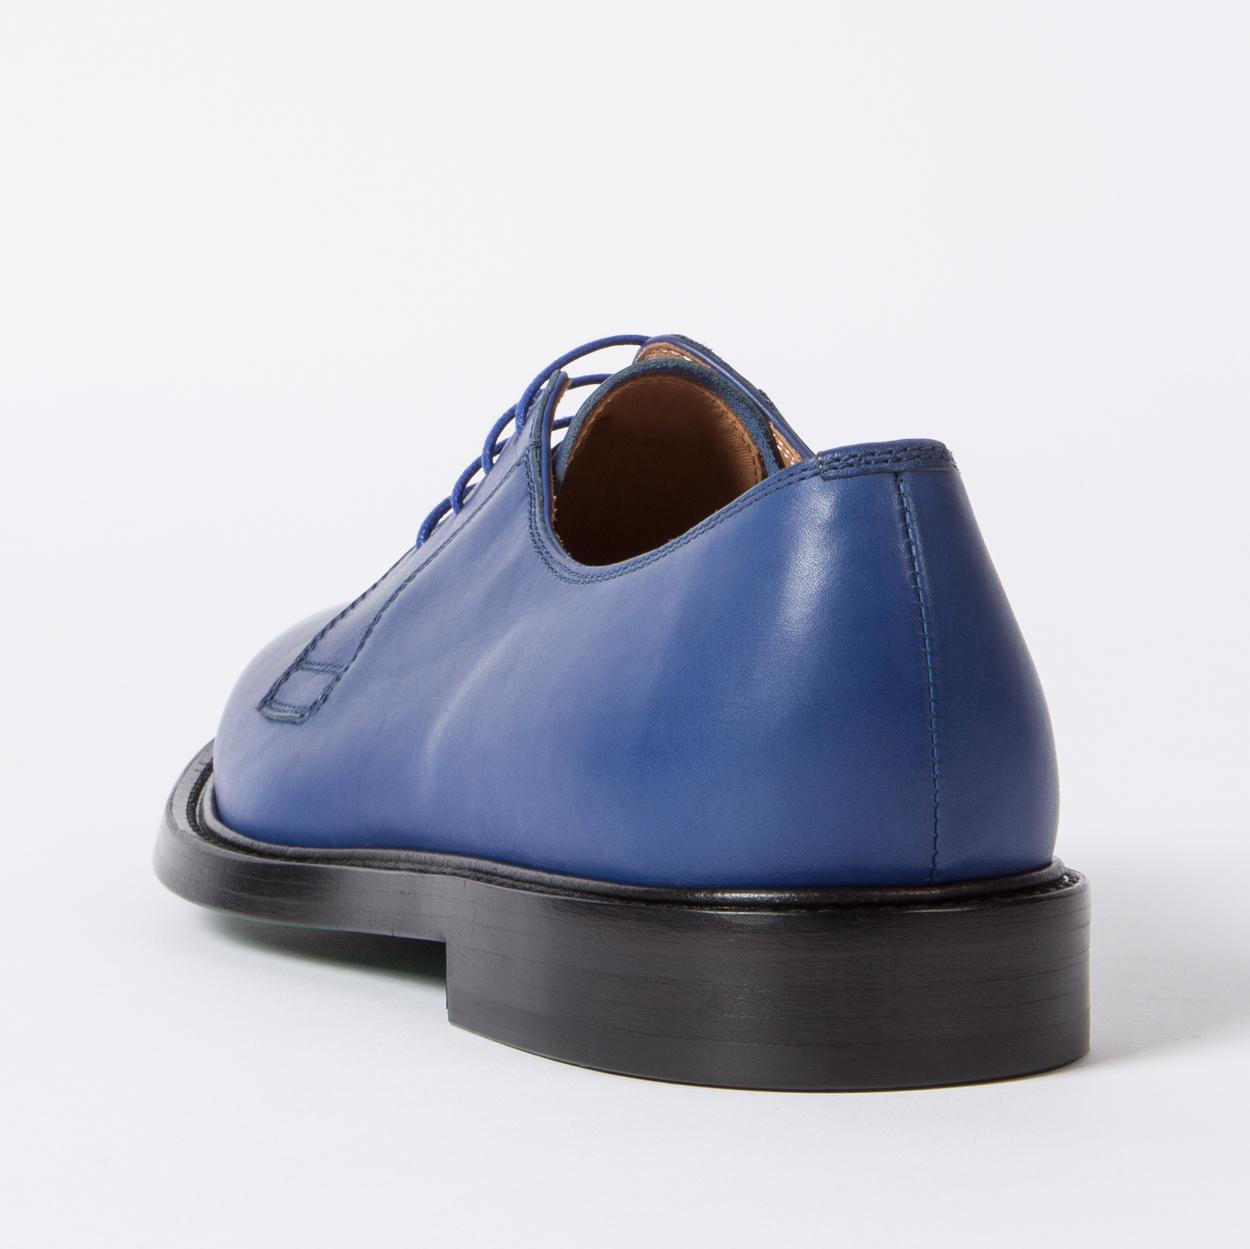 Paul Smith Boyd Leather Derby Shoes in Blue for Men